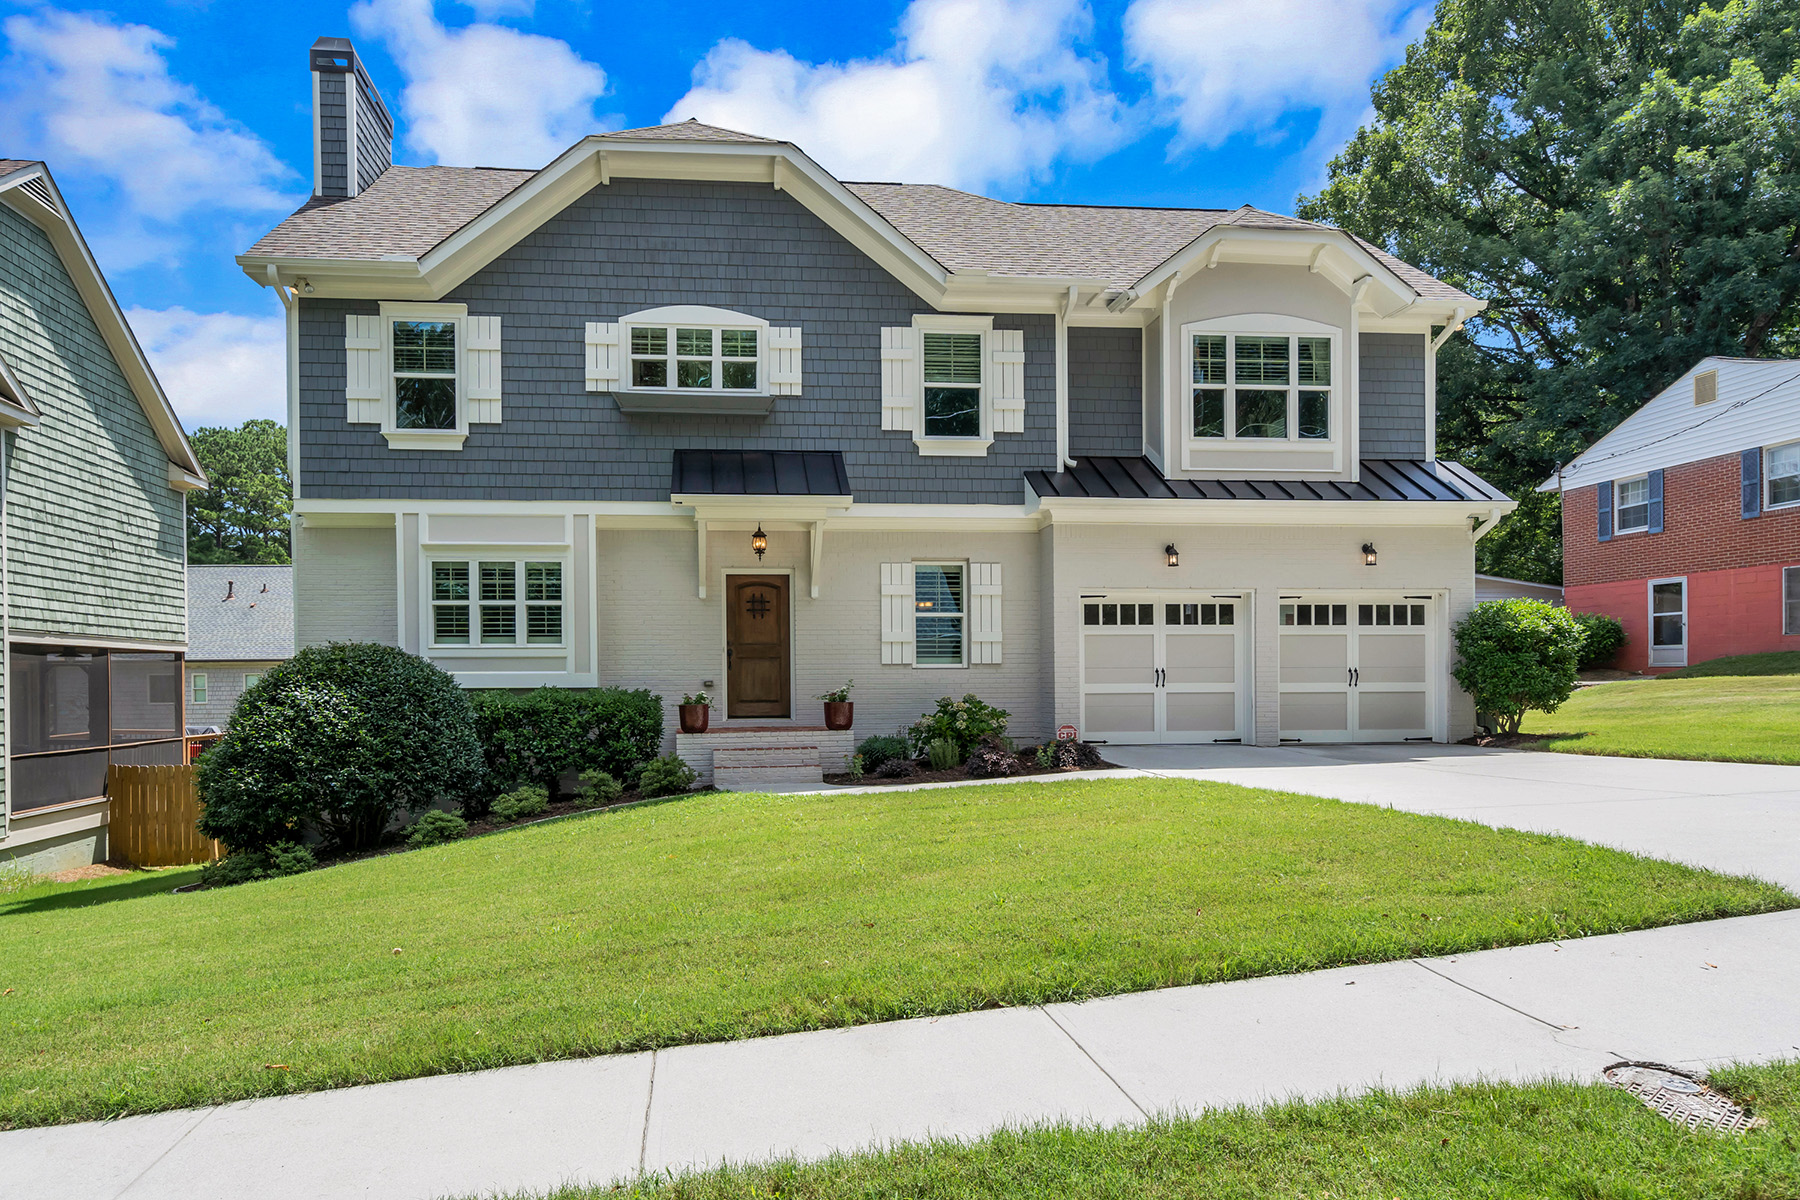 Single Family Homes のために 売買 アット Newer Construction Craftsman in the heart of Brookhaven 2341 Briarwood Hills Dr, Brookhaven, ジョージア 30319 アメリカ